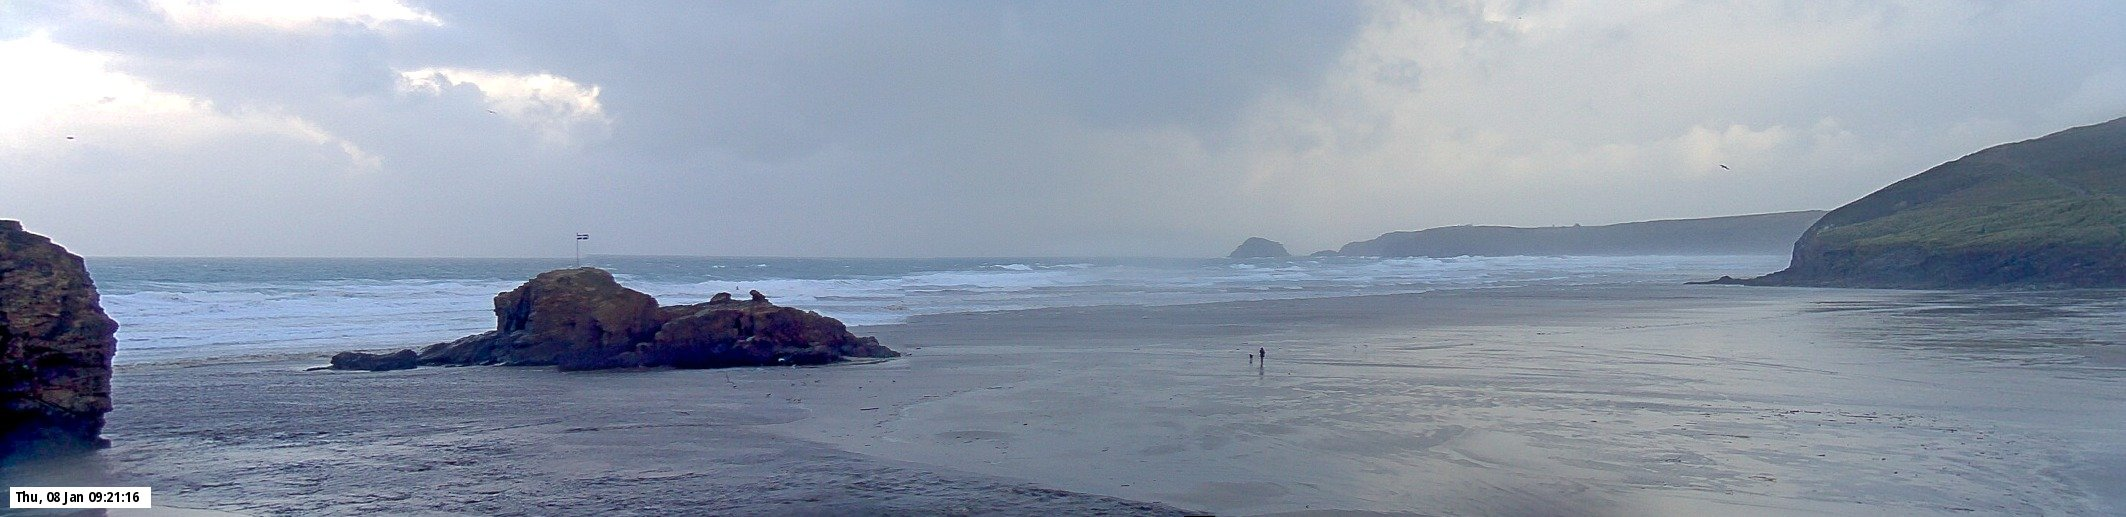 perranporth  droskyn  surf report  surf forecast and live surf webcams